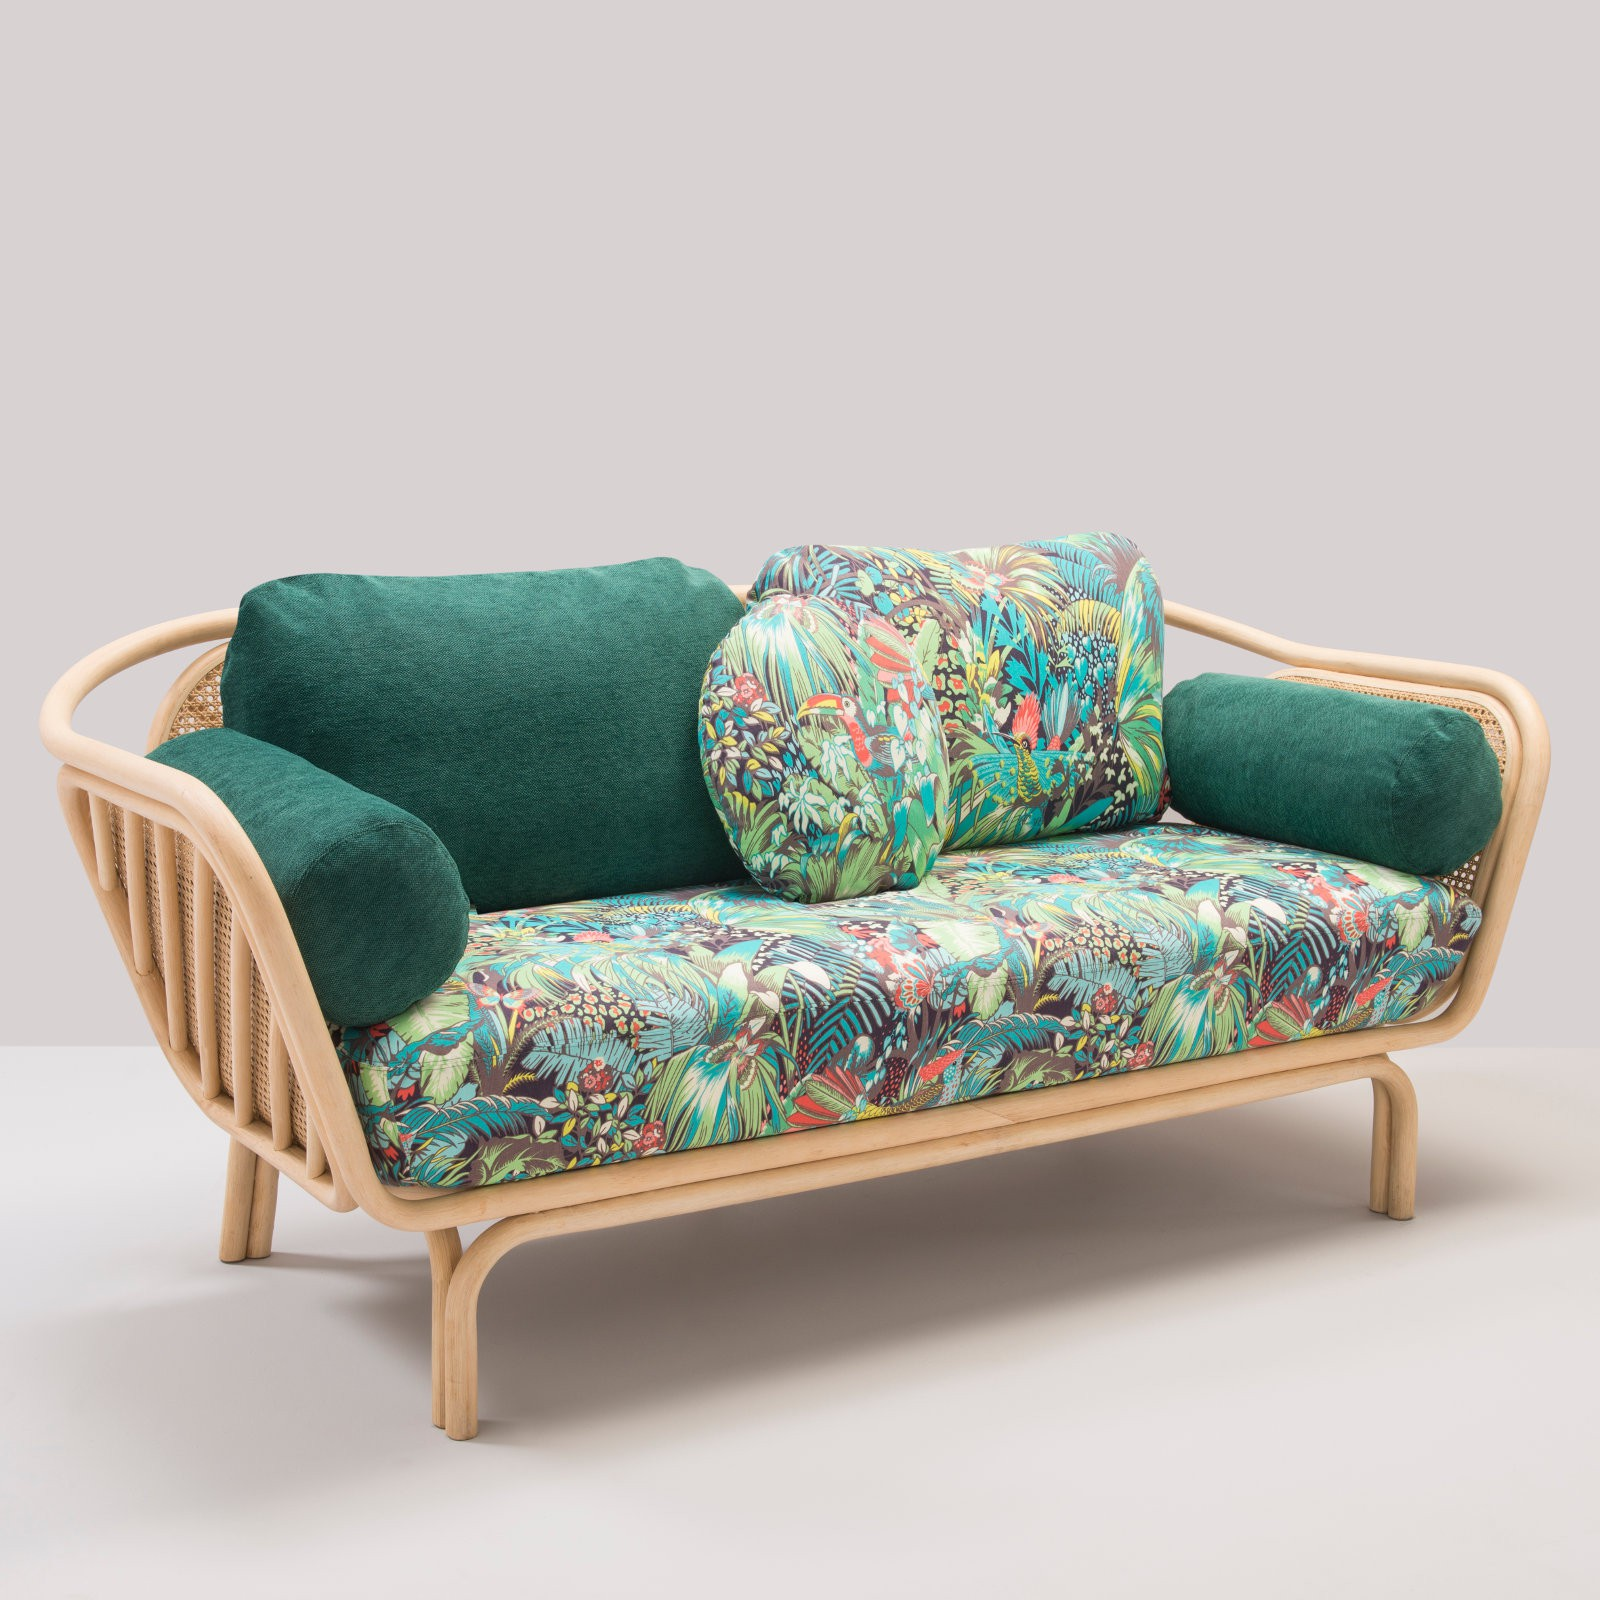 Rattan Sofa Ausziehbar.html BÔa Sofa In Rattan Designed By At Once